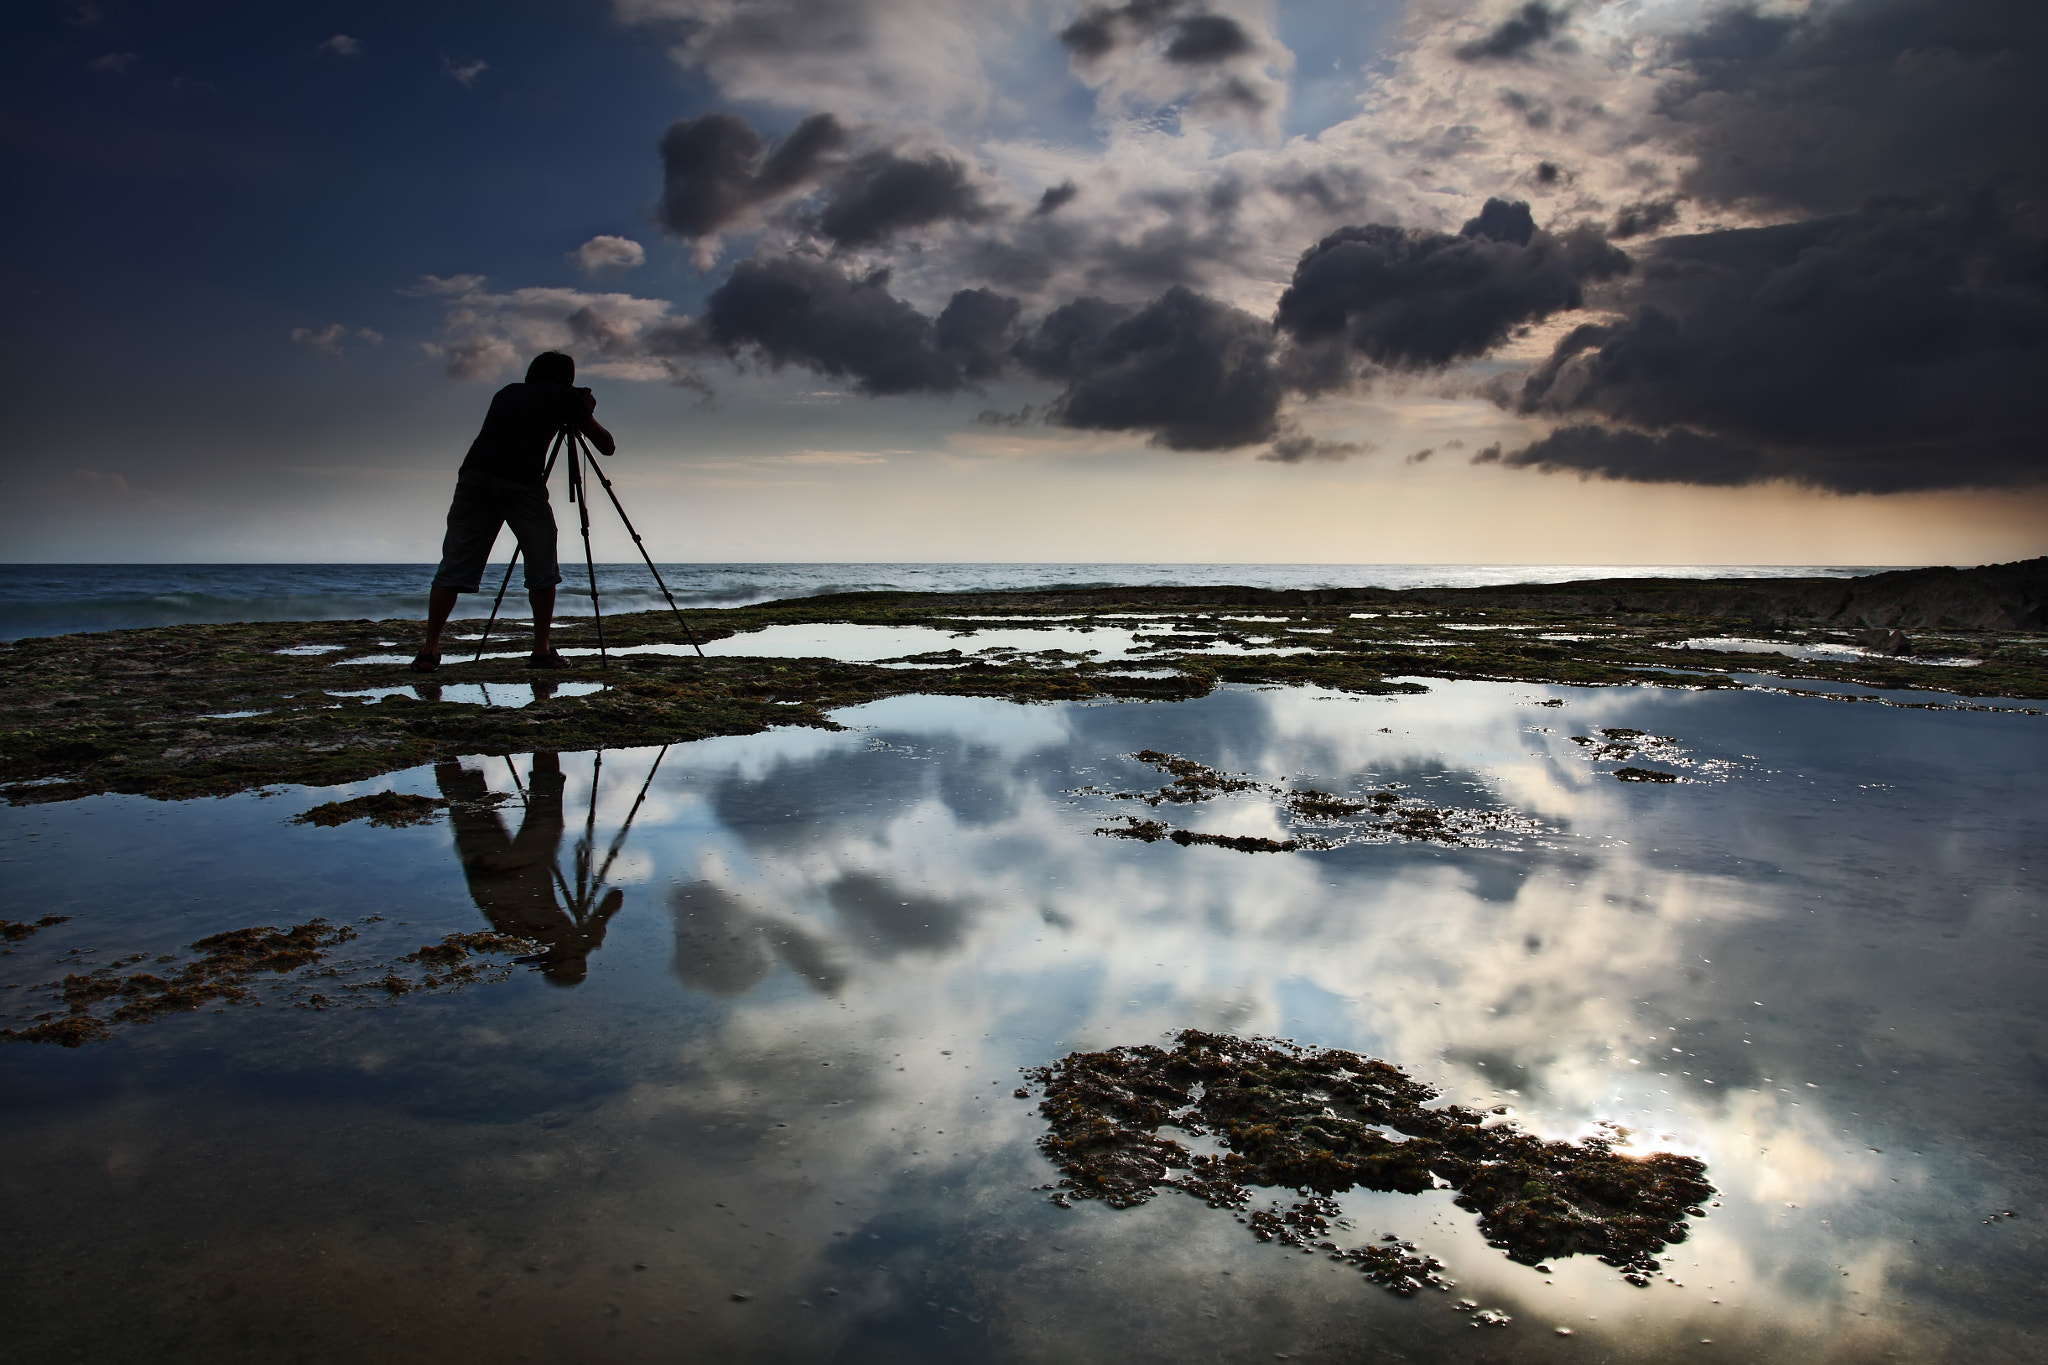 Photograph Reflection & Photographer by Rollando  Roeslan on 500px